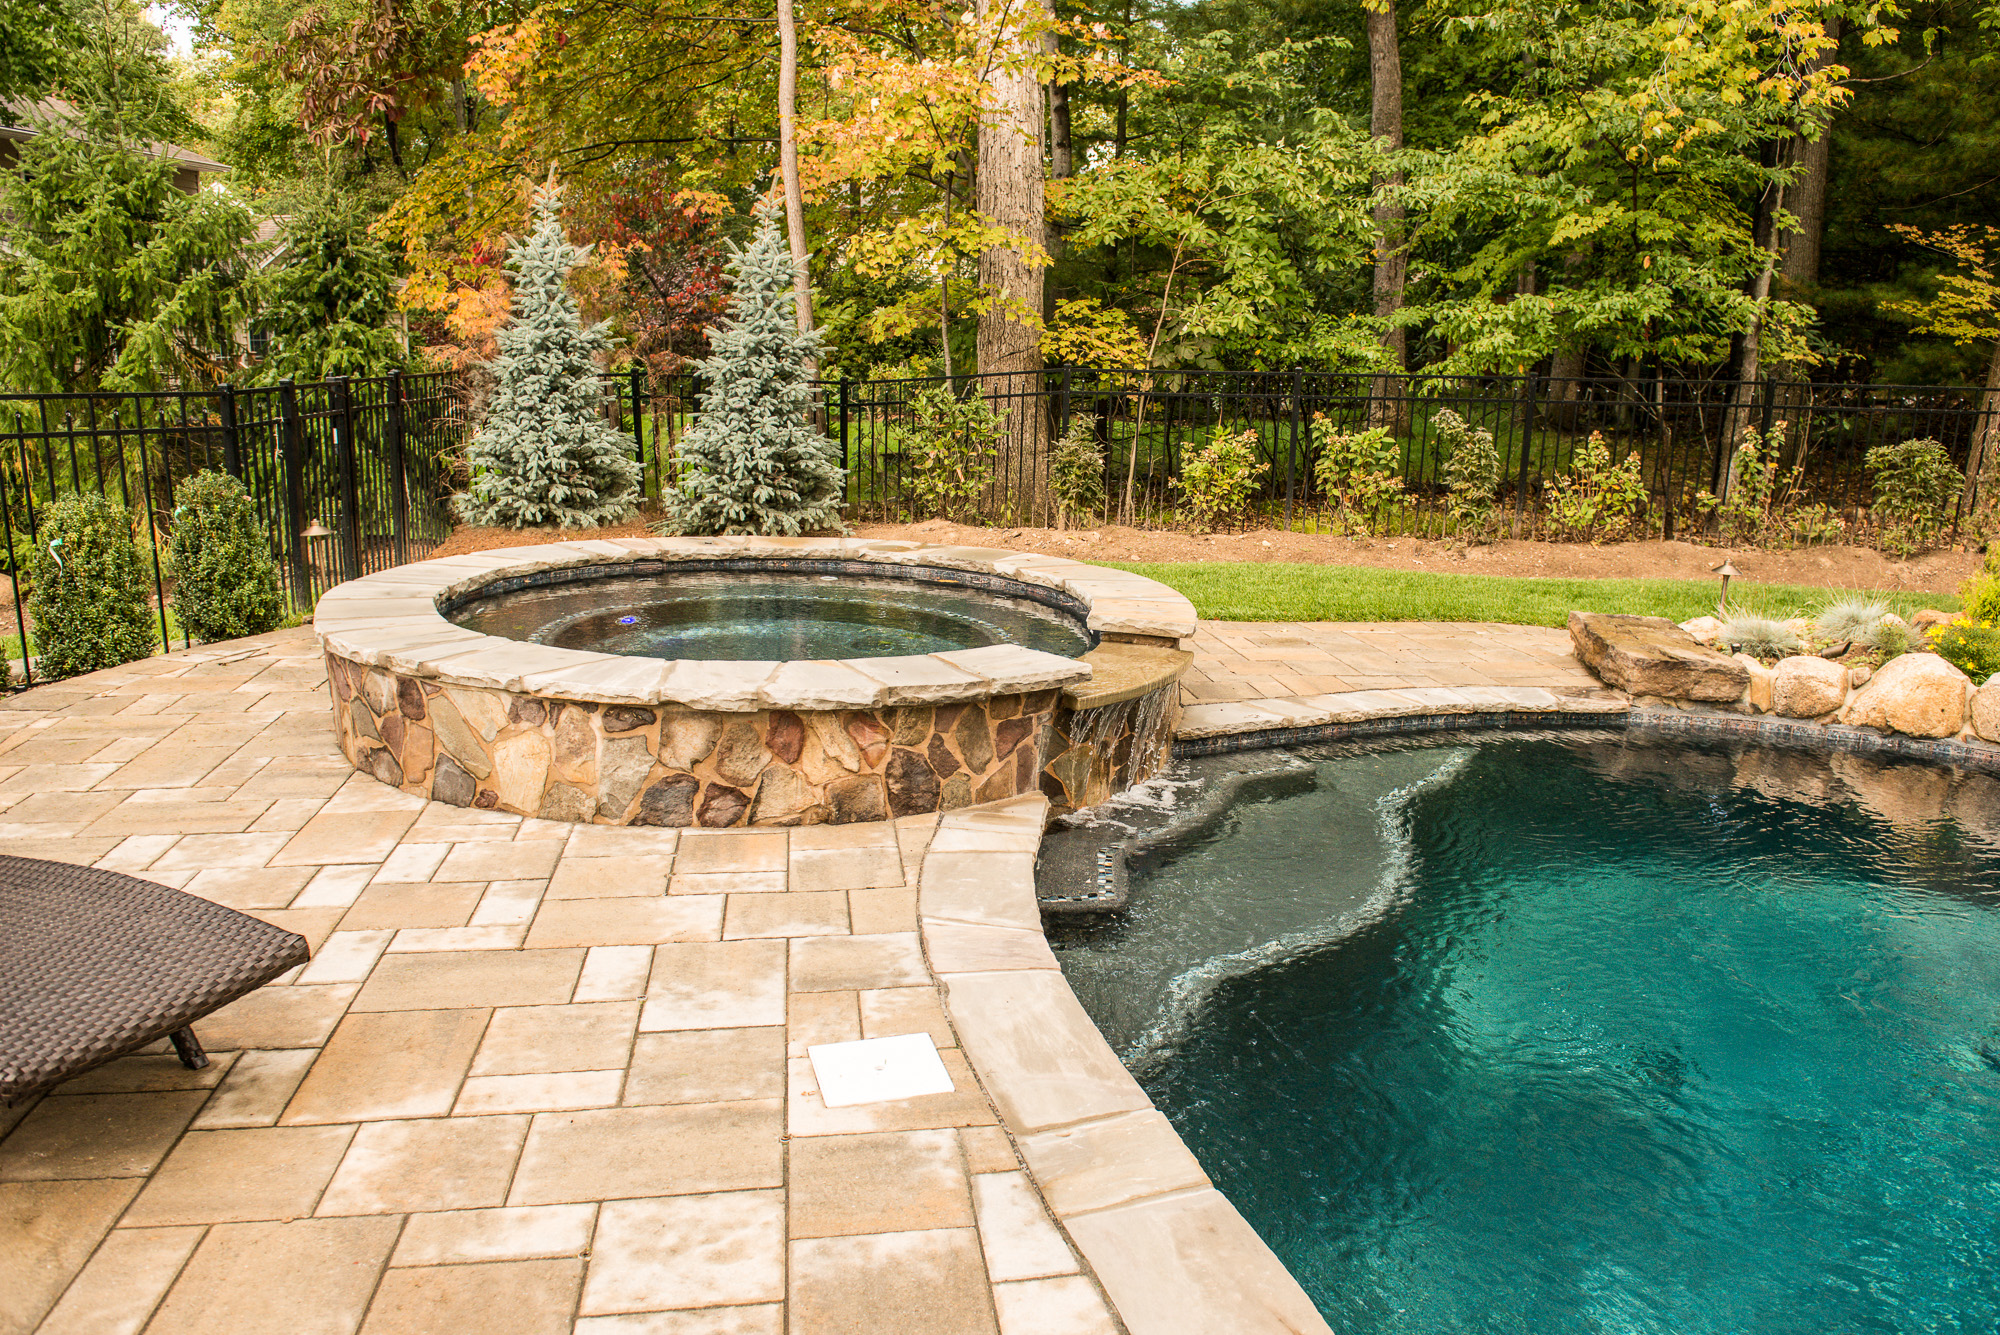 Rivervale nj custom inground swimming pool design for Custom inground swimming pools